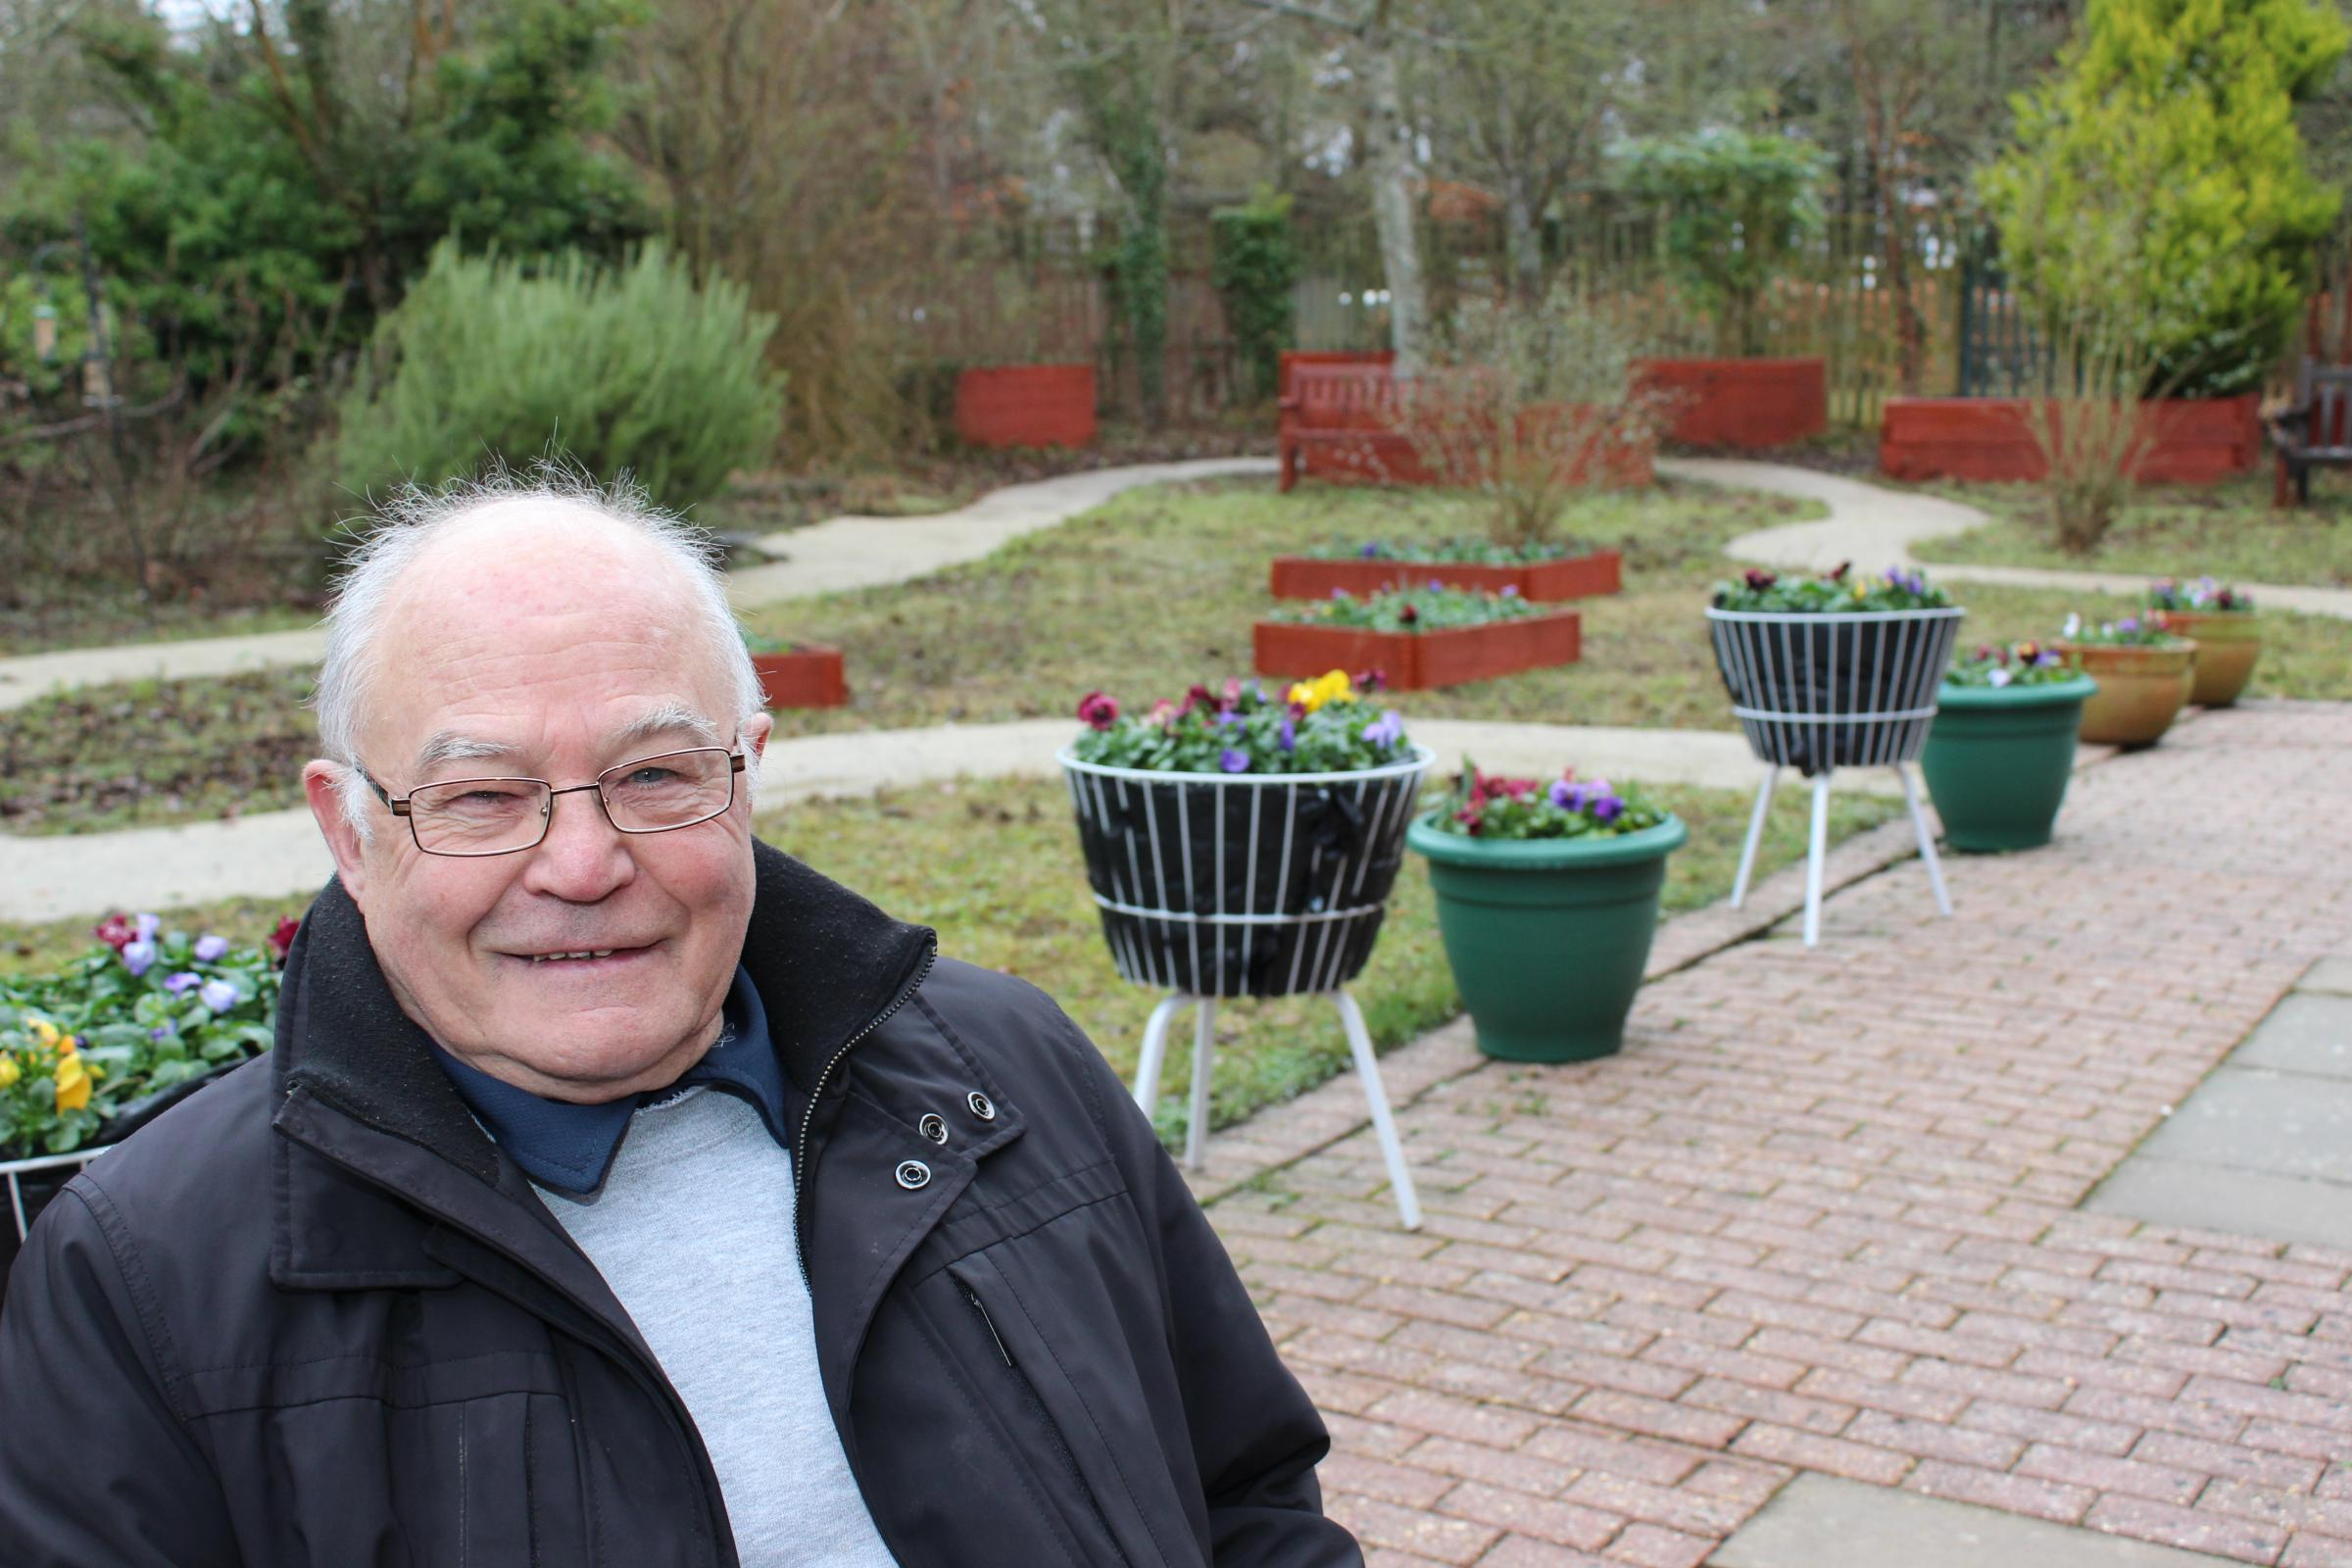 Jim Hanson in the garden he created at Andover War Memorial Hospital